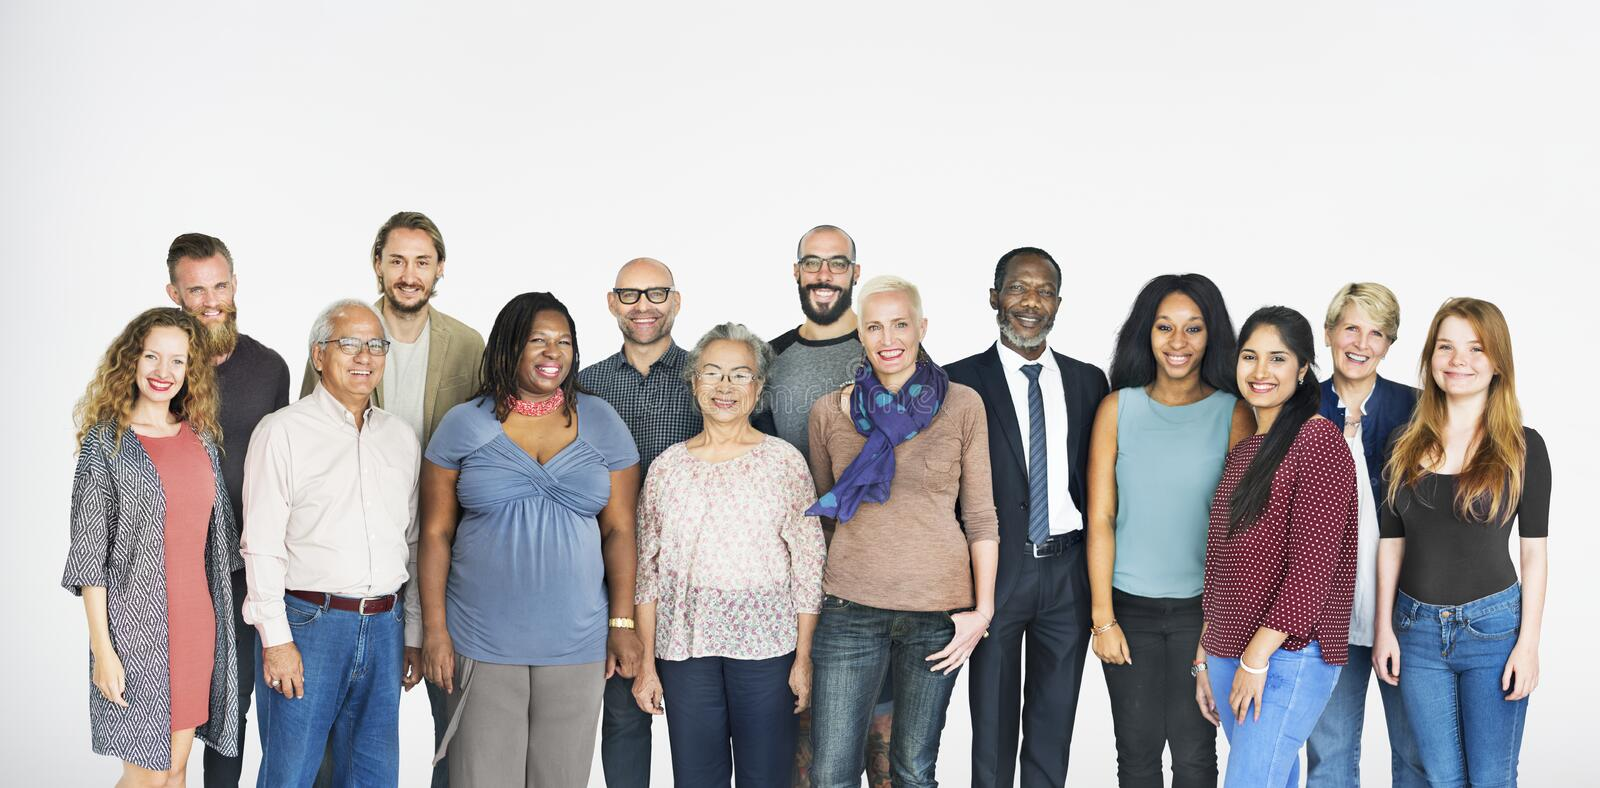 A group of diverse people isolated on white stock images